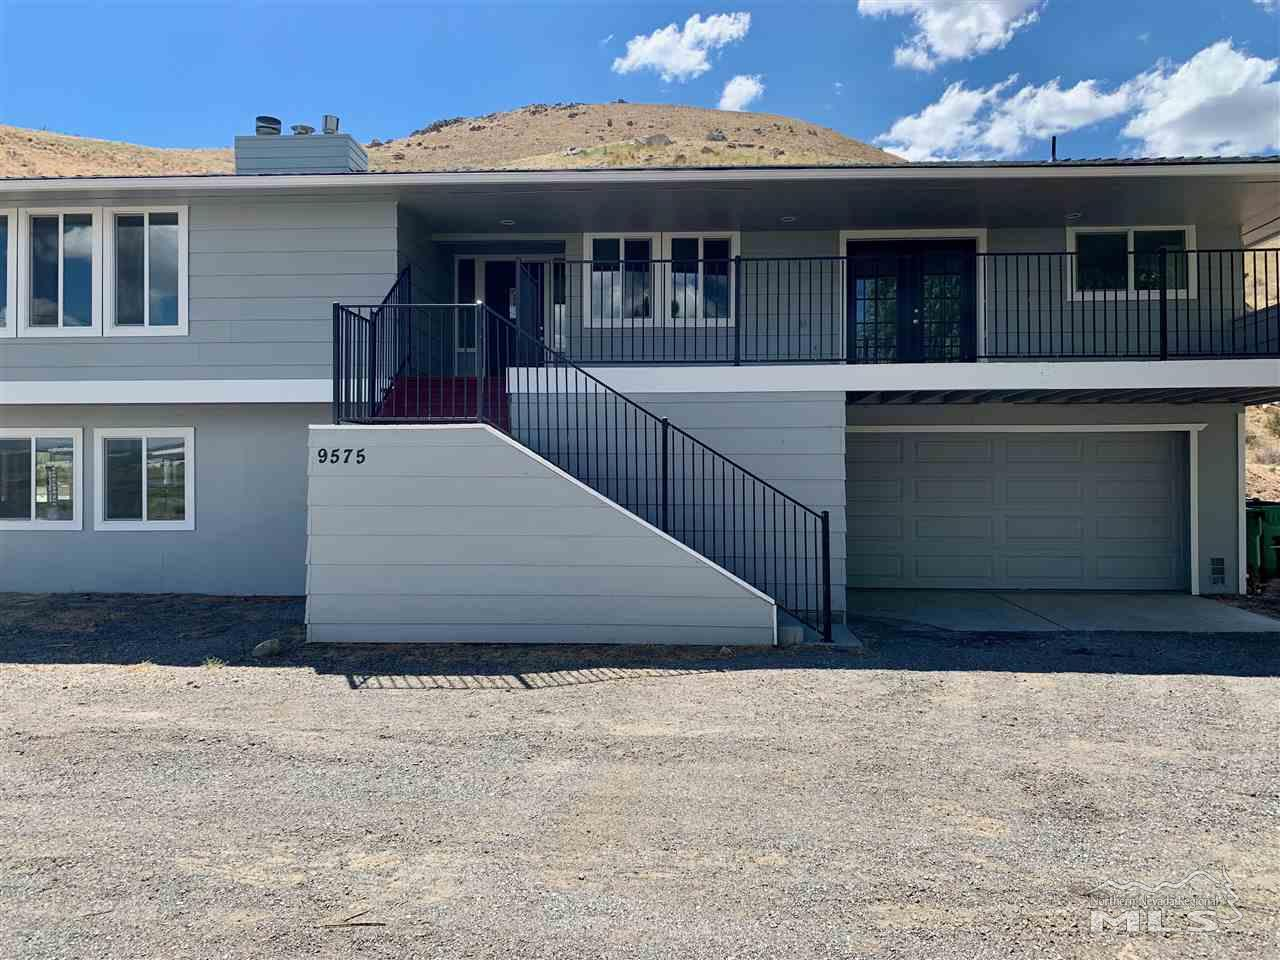 Image for 9575 Red Rock Rd, Reno, NV 89508